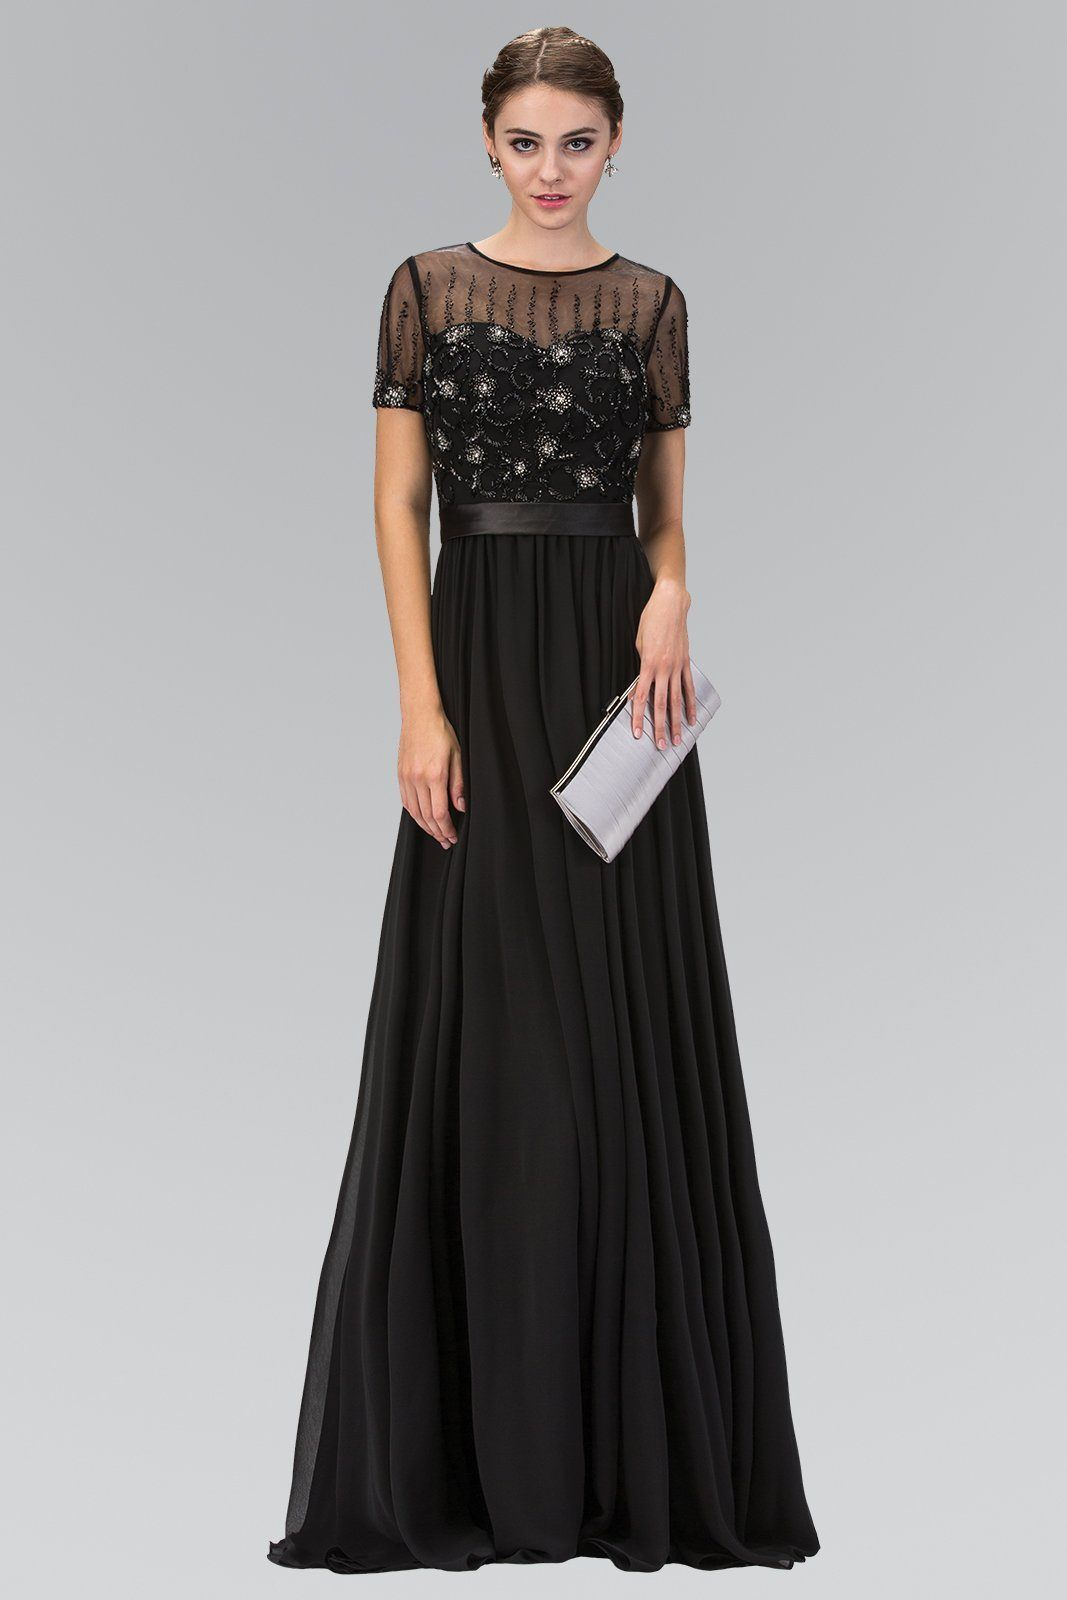 Long sleeve black evening gown gls 2042 | Evening gowns ...